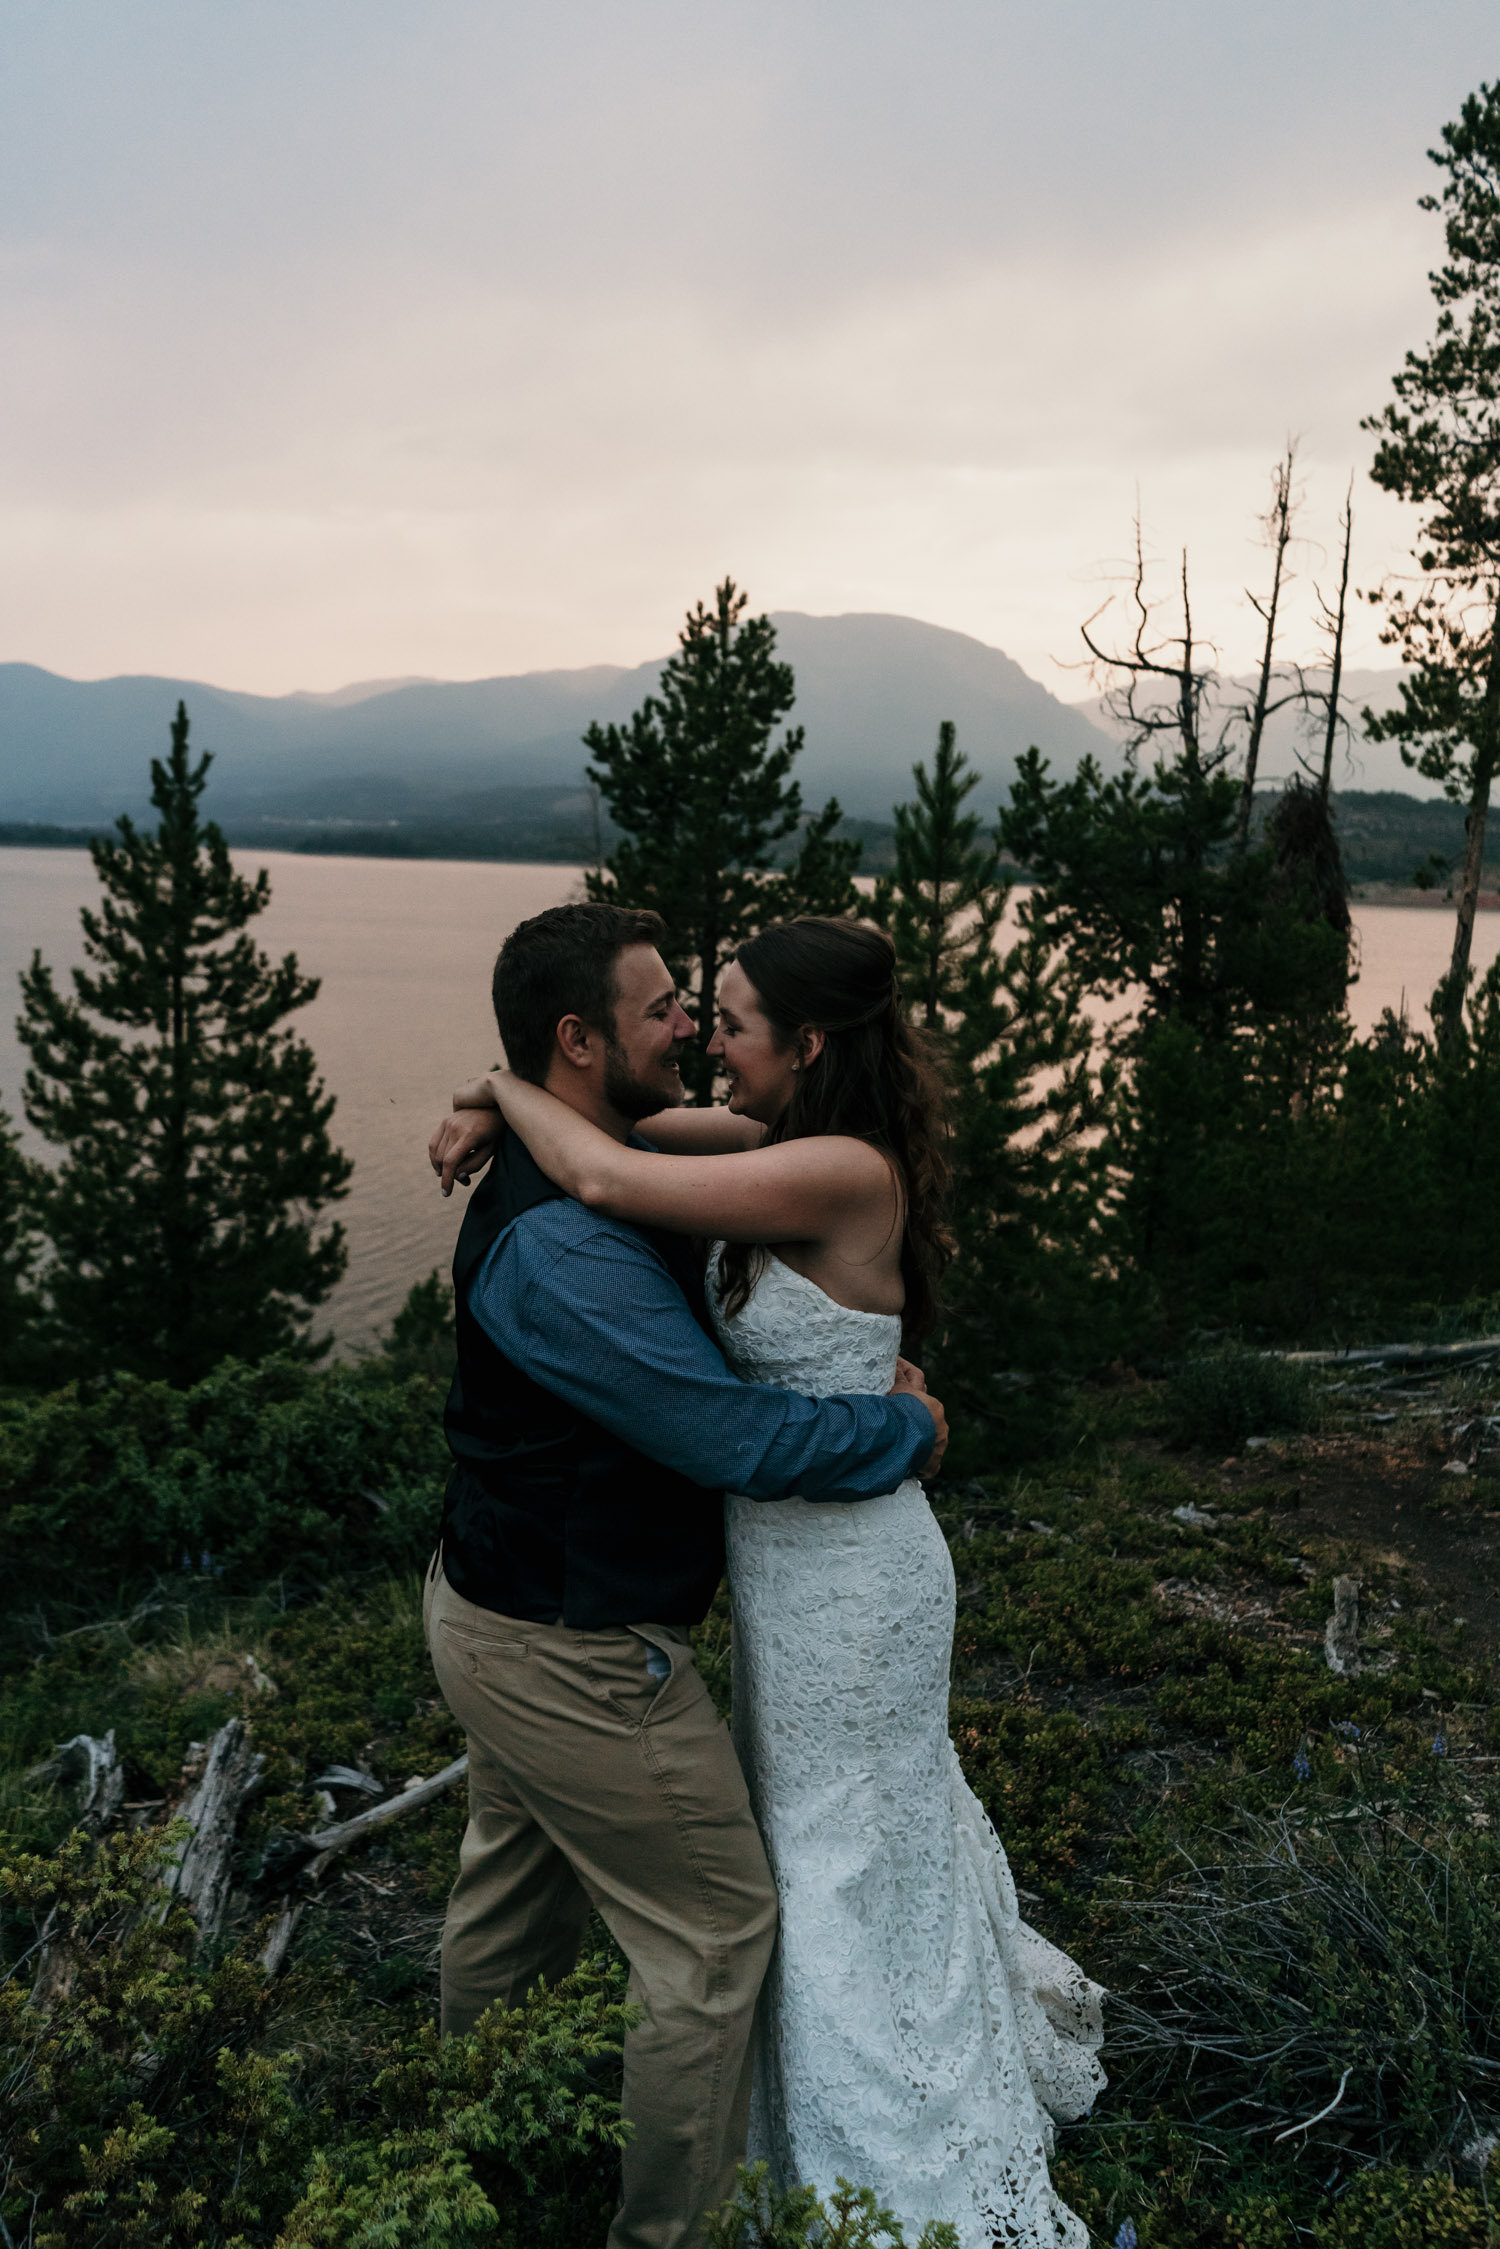 Beth_Jeff_Colorado_Wedding_MegONeillPhotography__180721_126